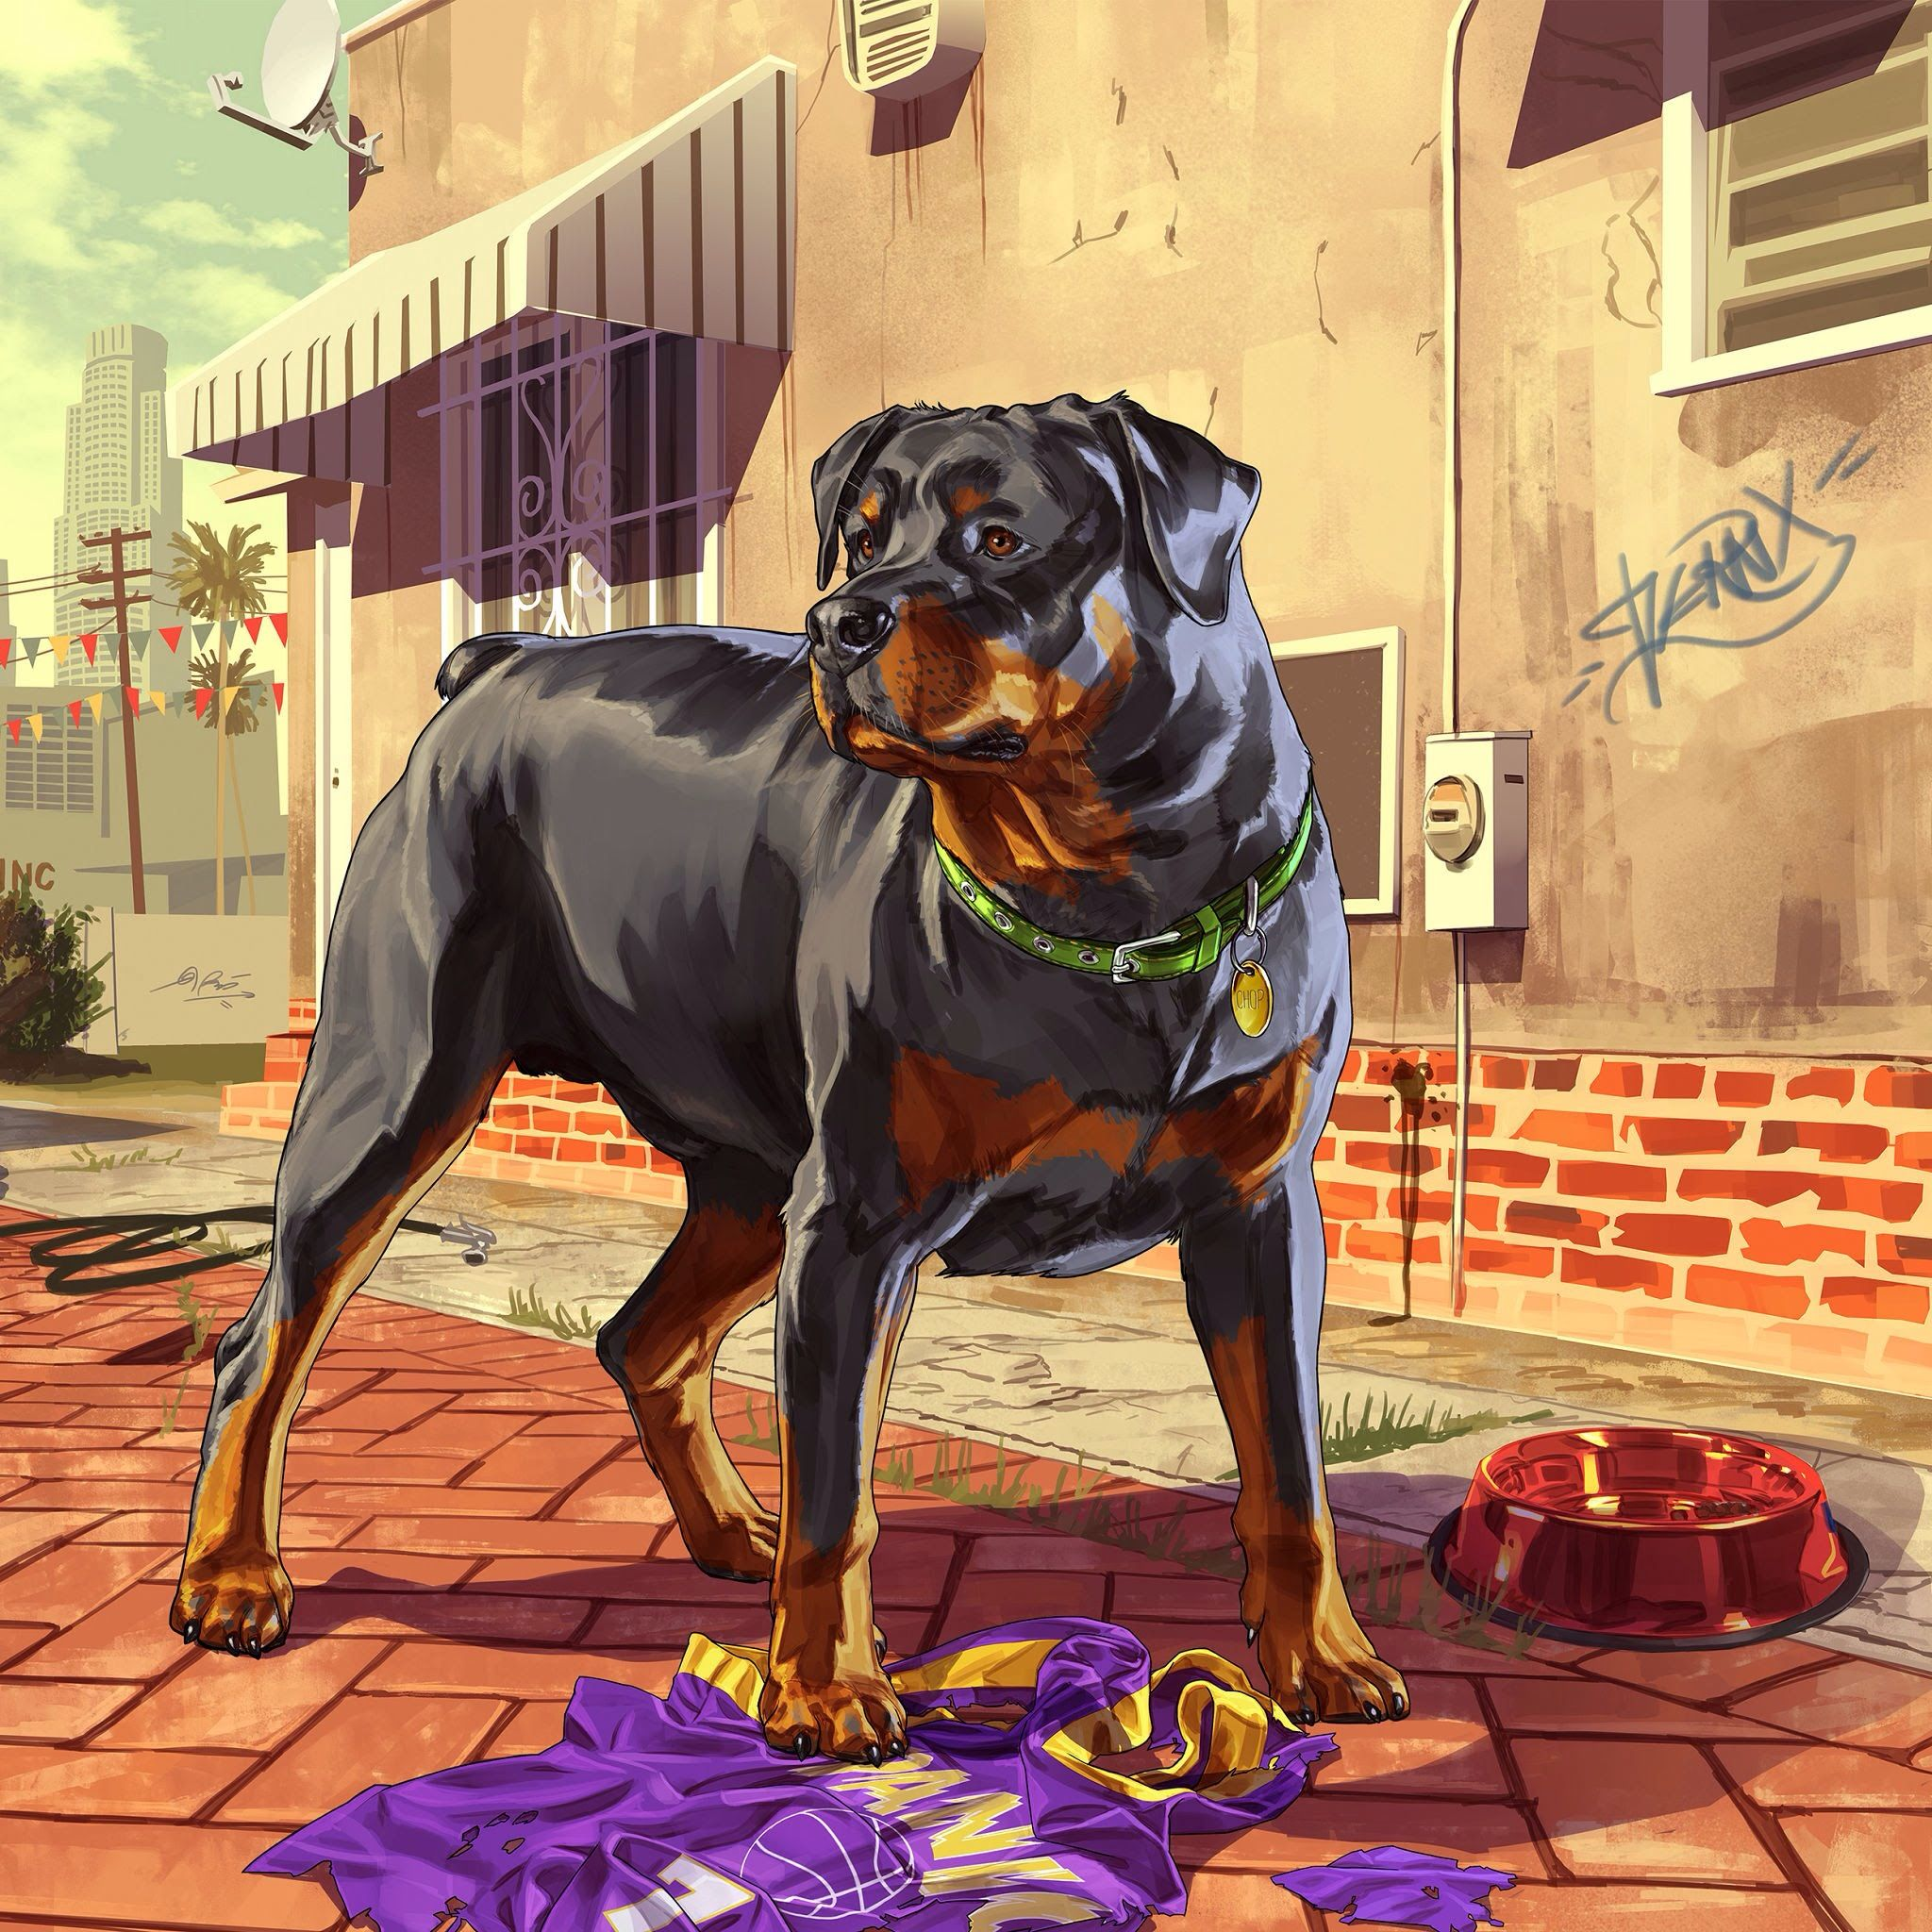 Pin By Aaron Viles On Video Game Series Rottweiler Gta Grand